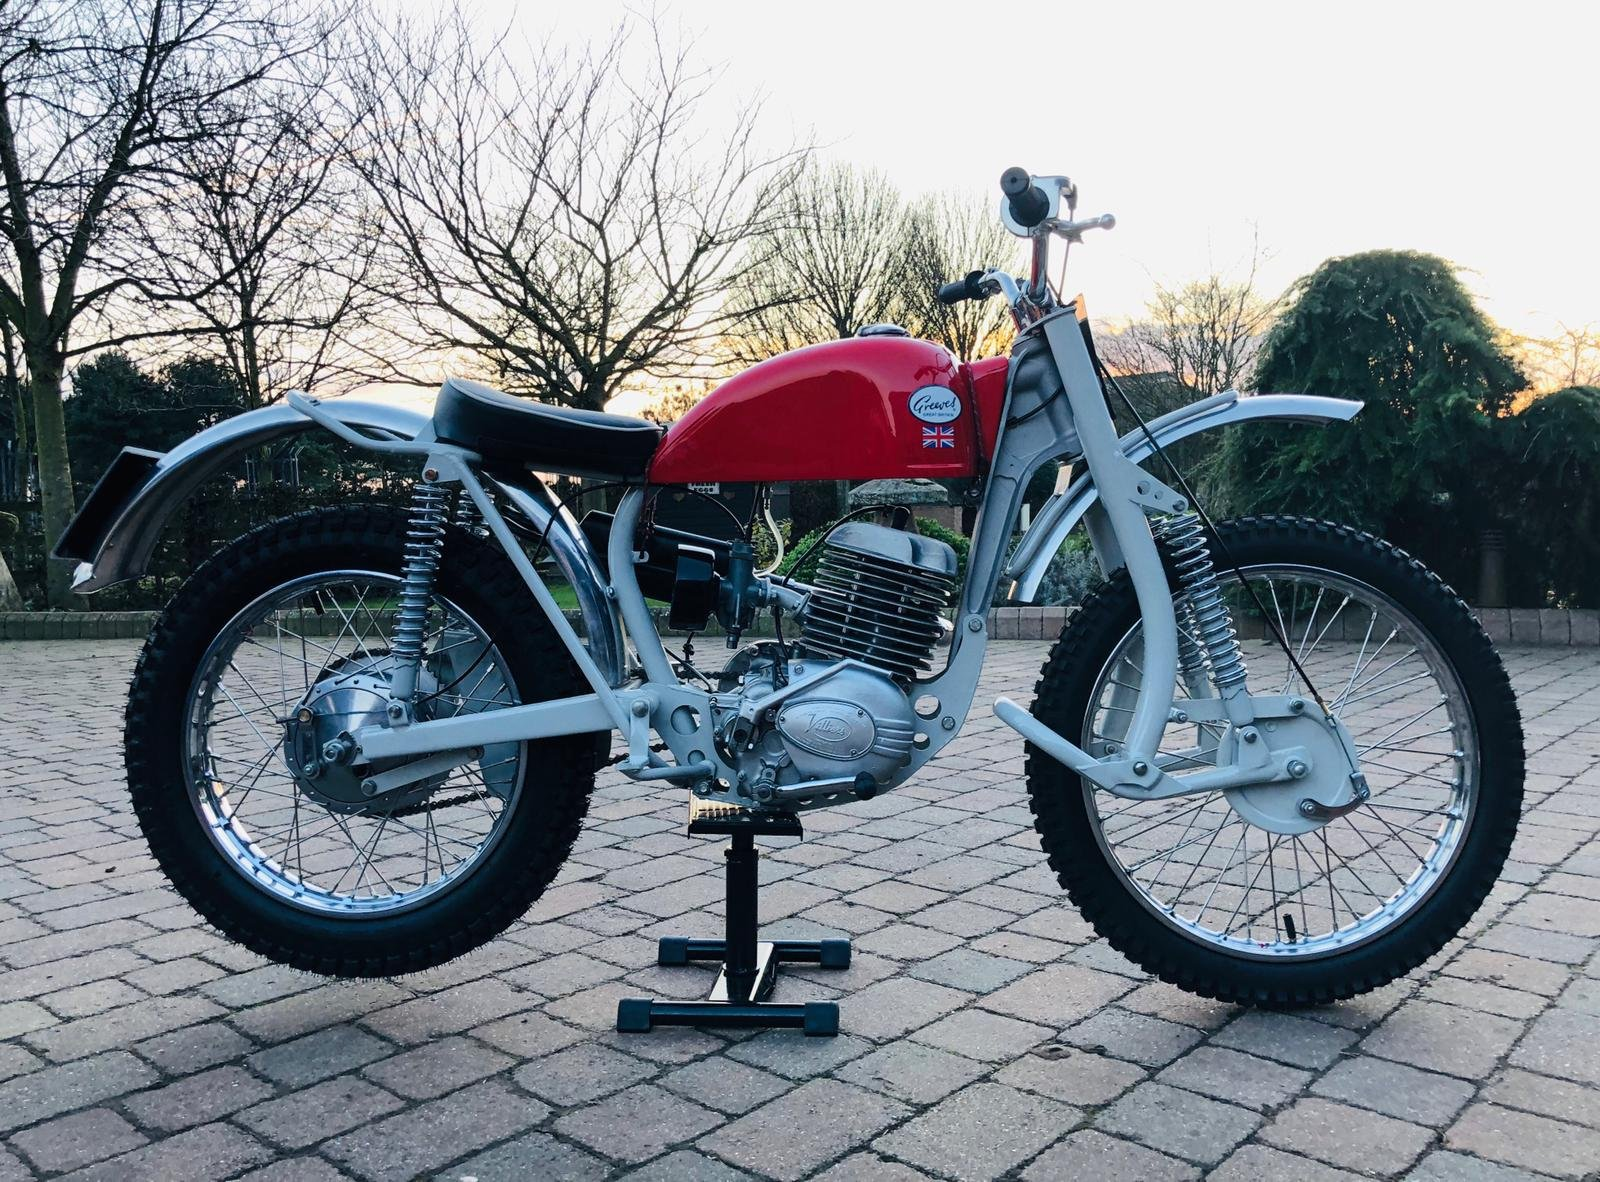 Greeves Anglian 250 -2 stroke 1966 For Sale (picture 2 of 6)